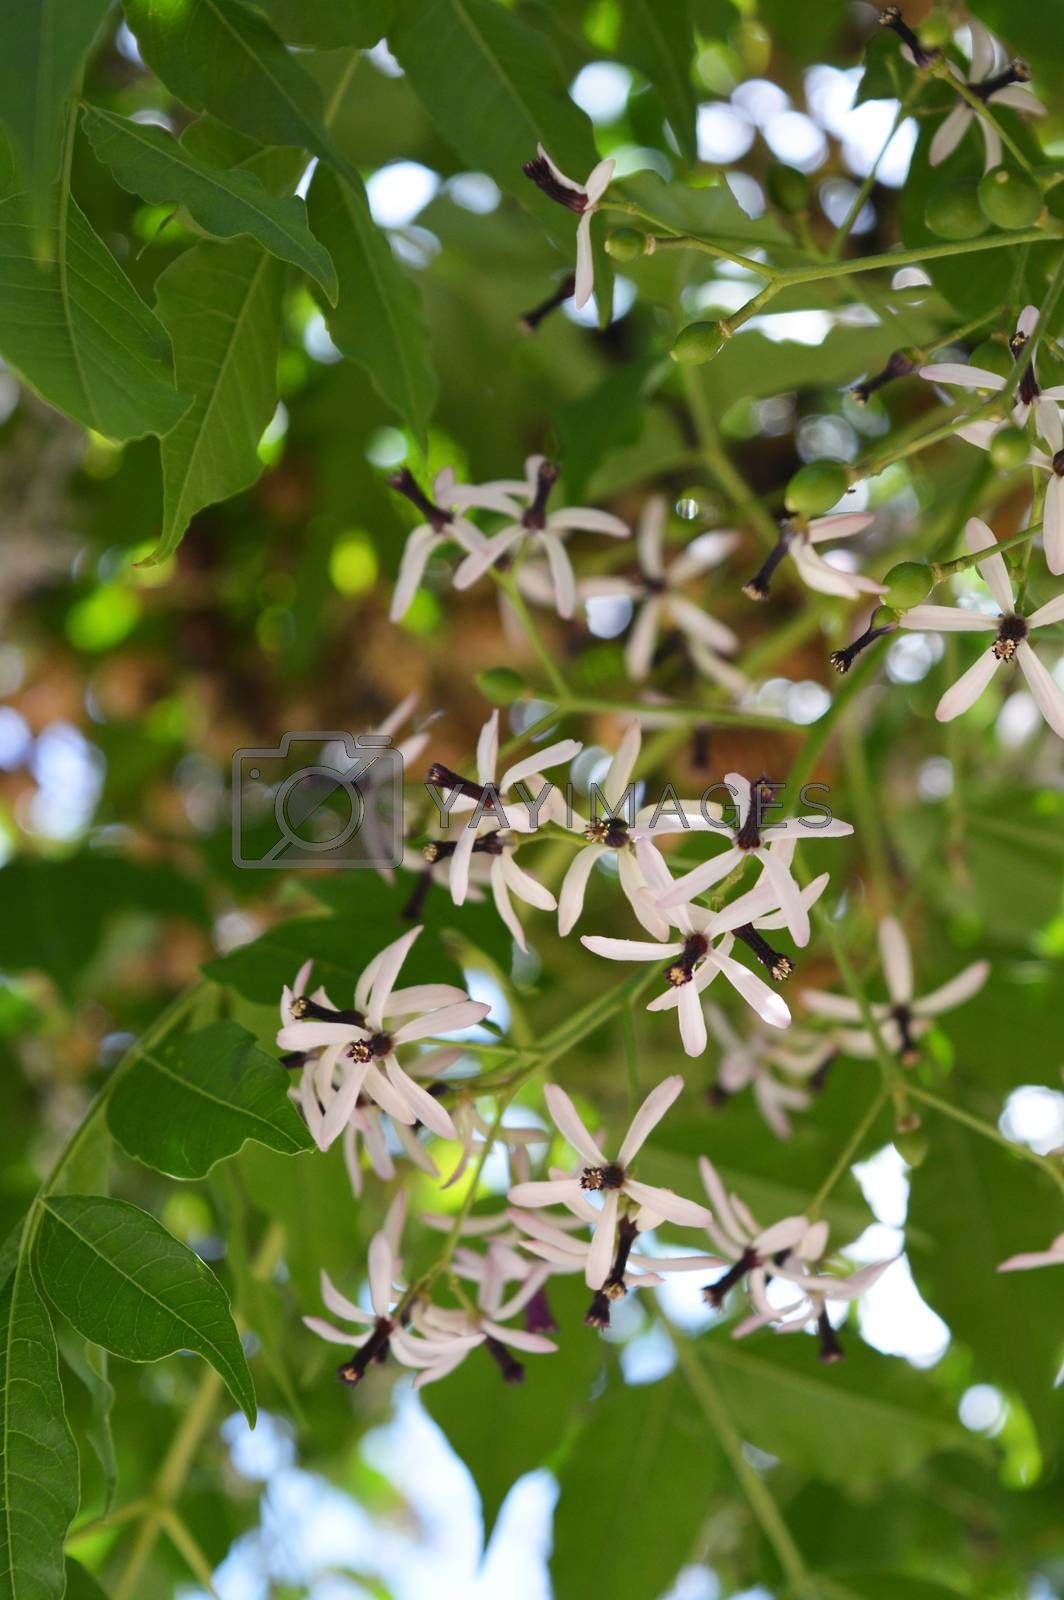 Colored photo of tree flowers  with green leaf